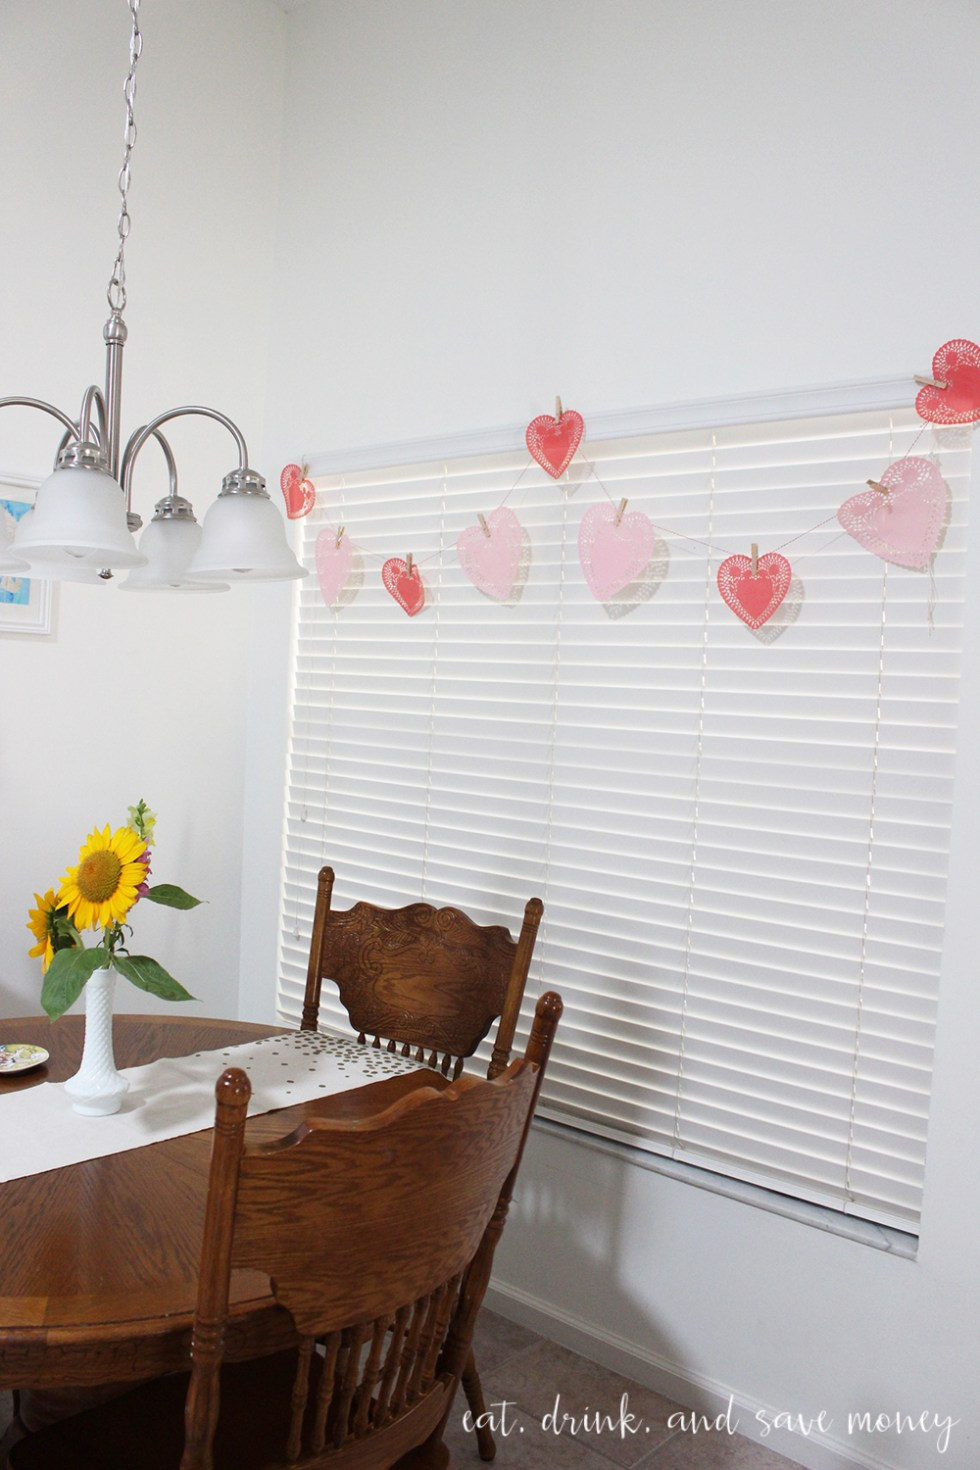 Valentine's Day Decor with doilies